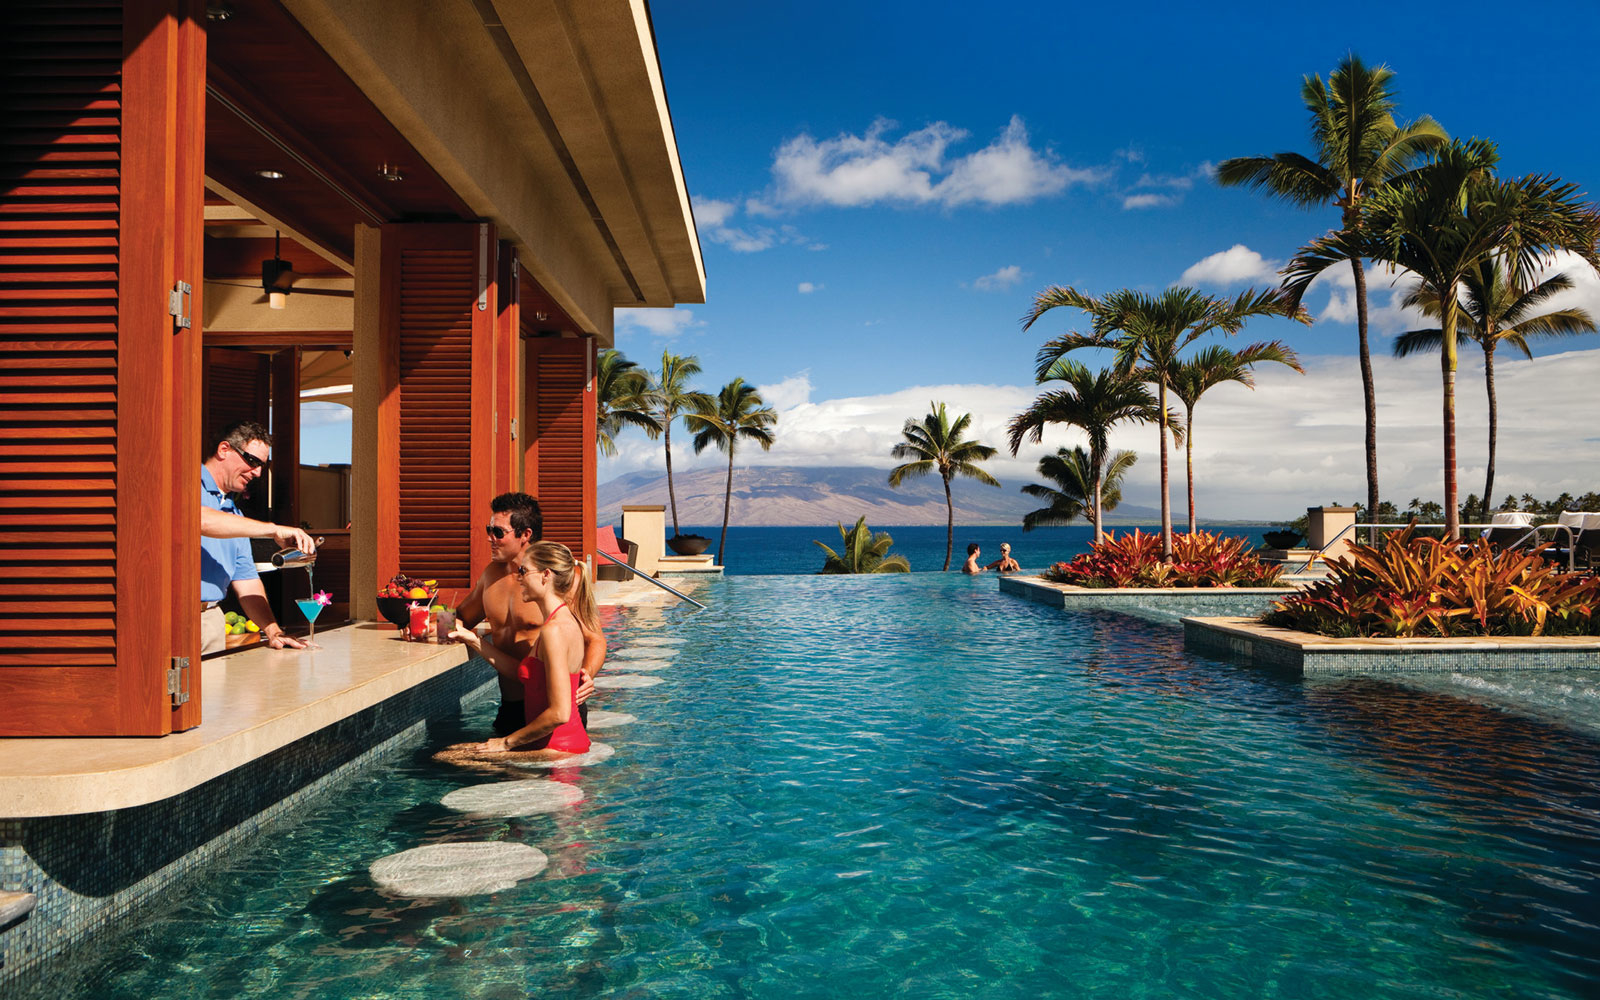 Four Seasons Resort at Wailea in Maui, Hawaii